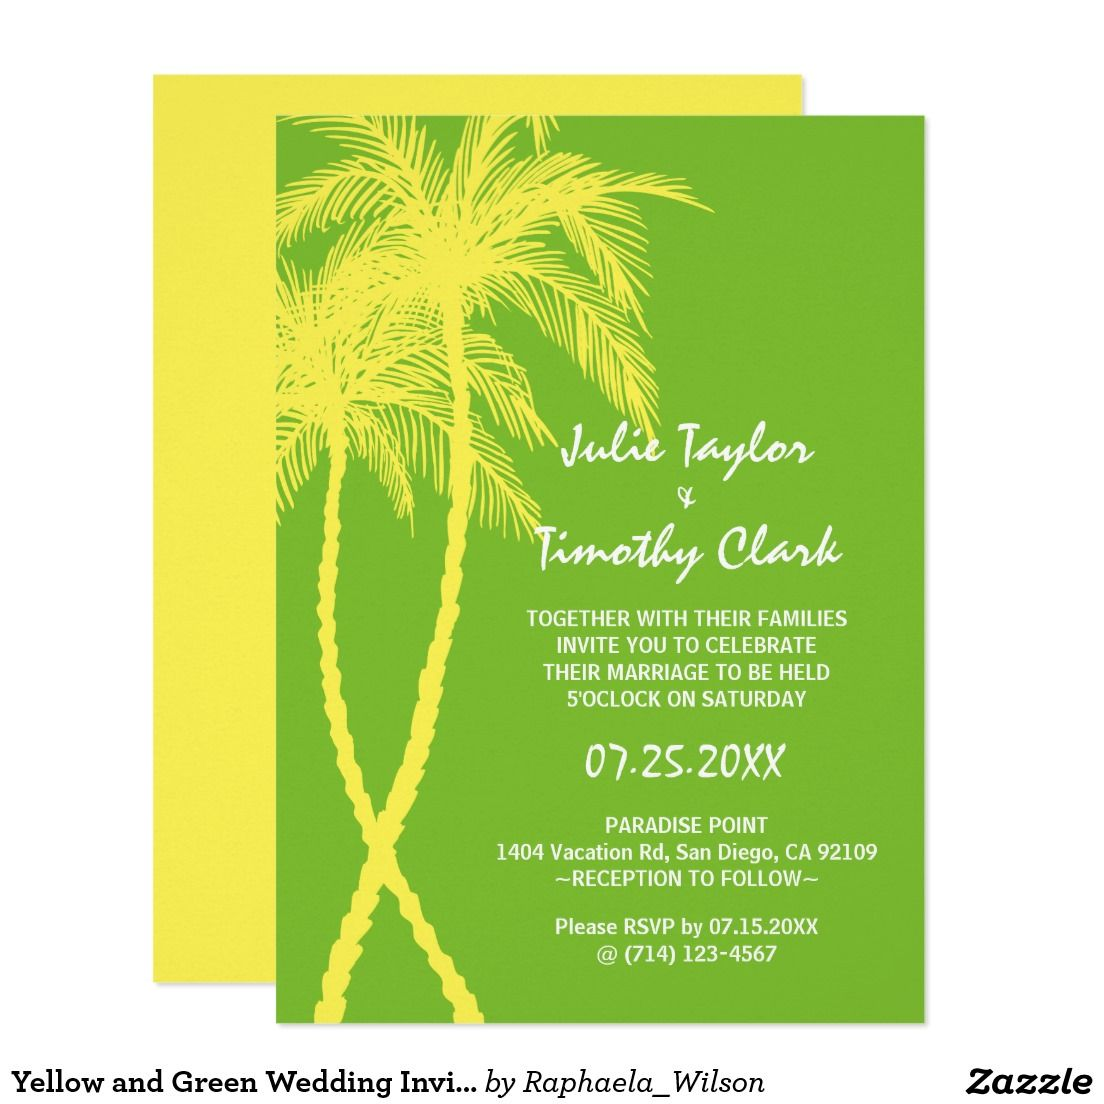 Yellow and Green Wedding Invitations | Tropical Palm Tree Wedding ...